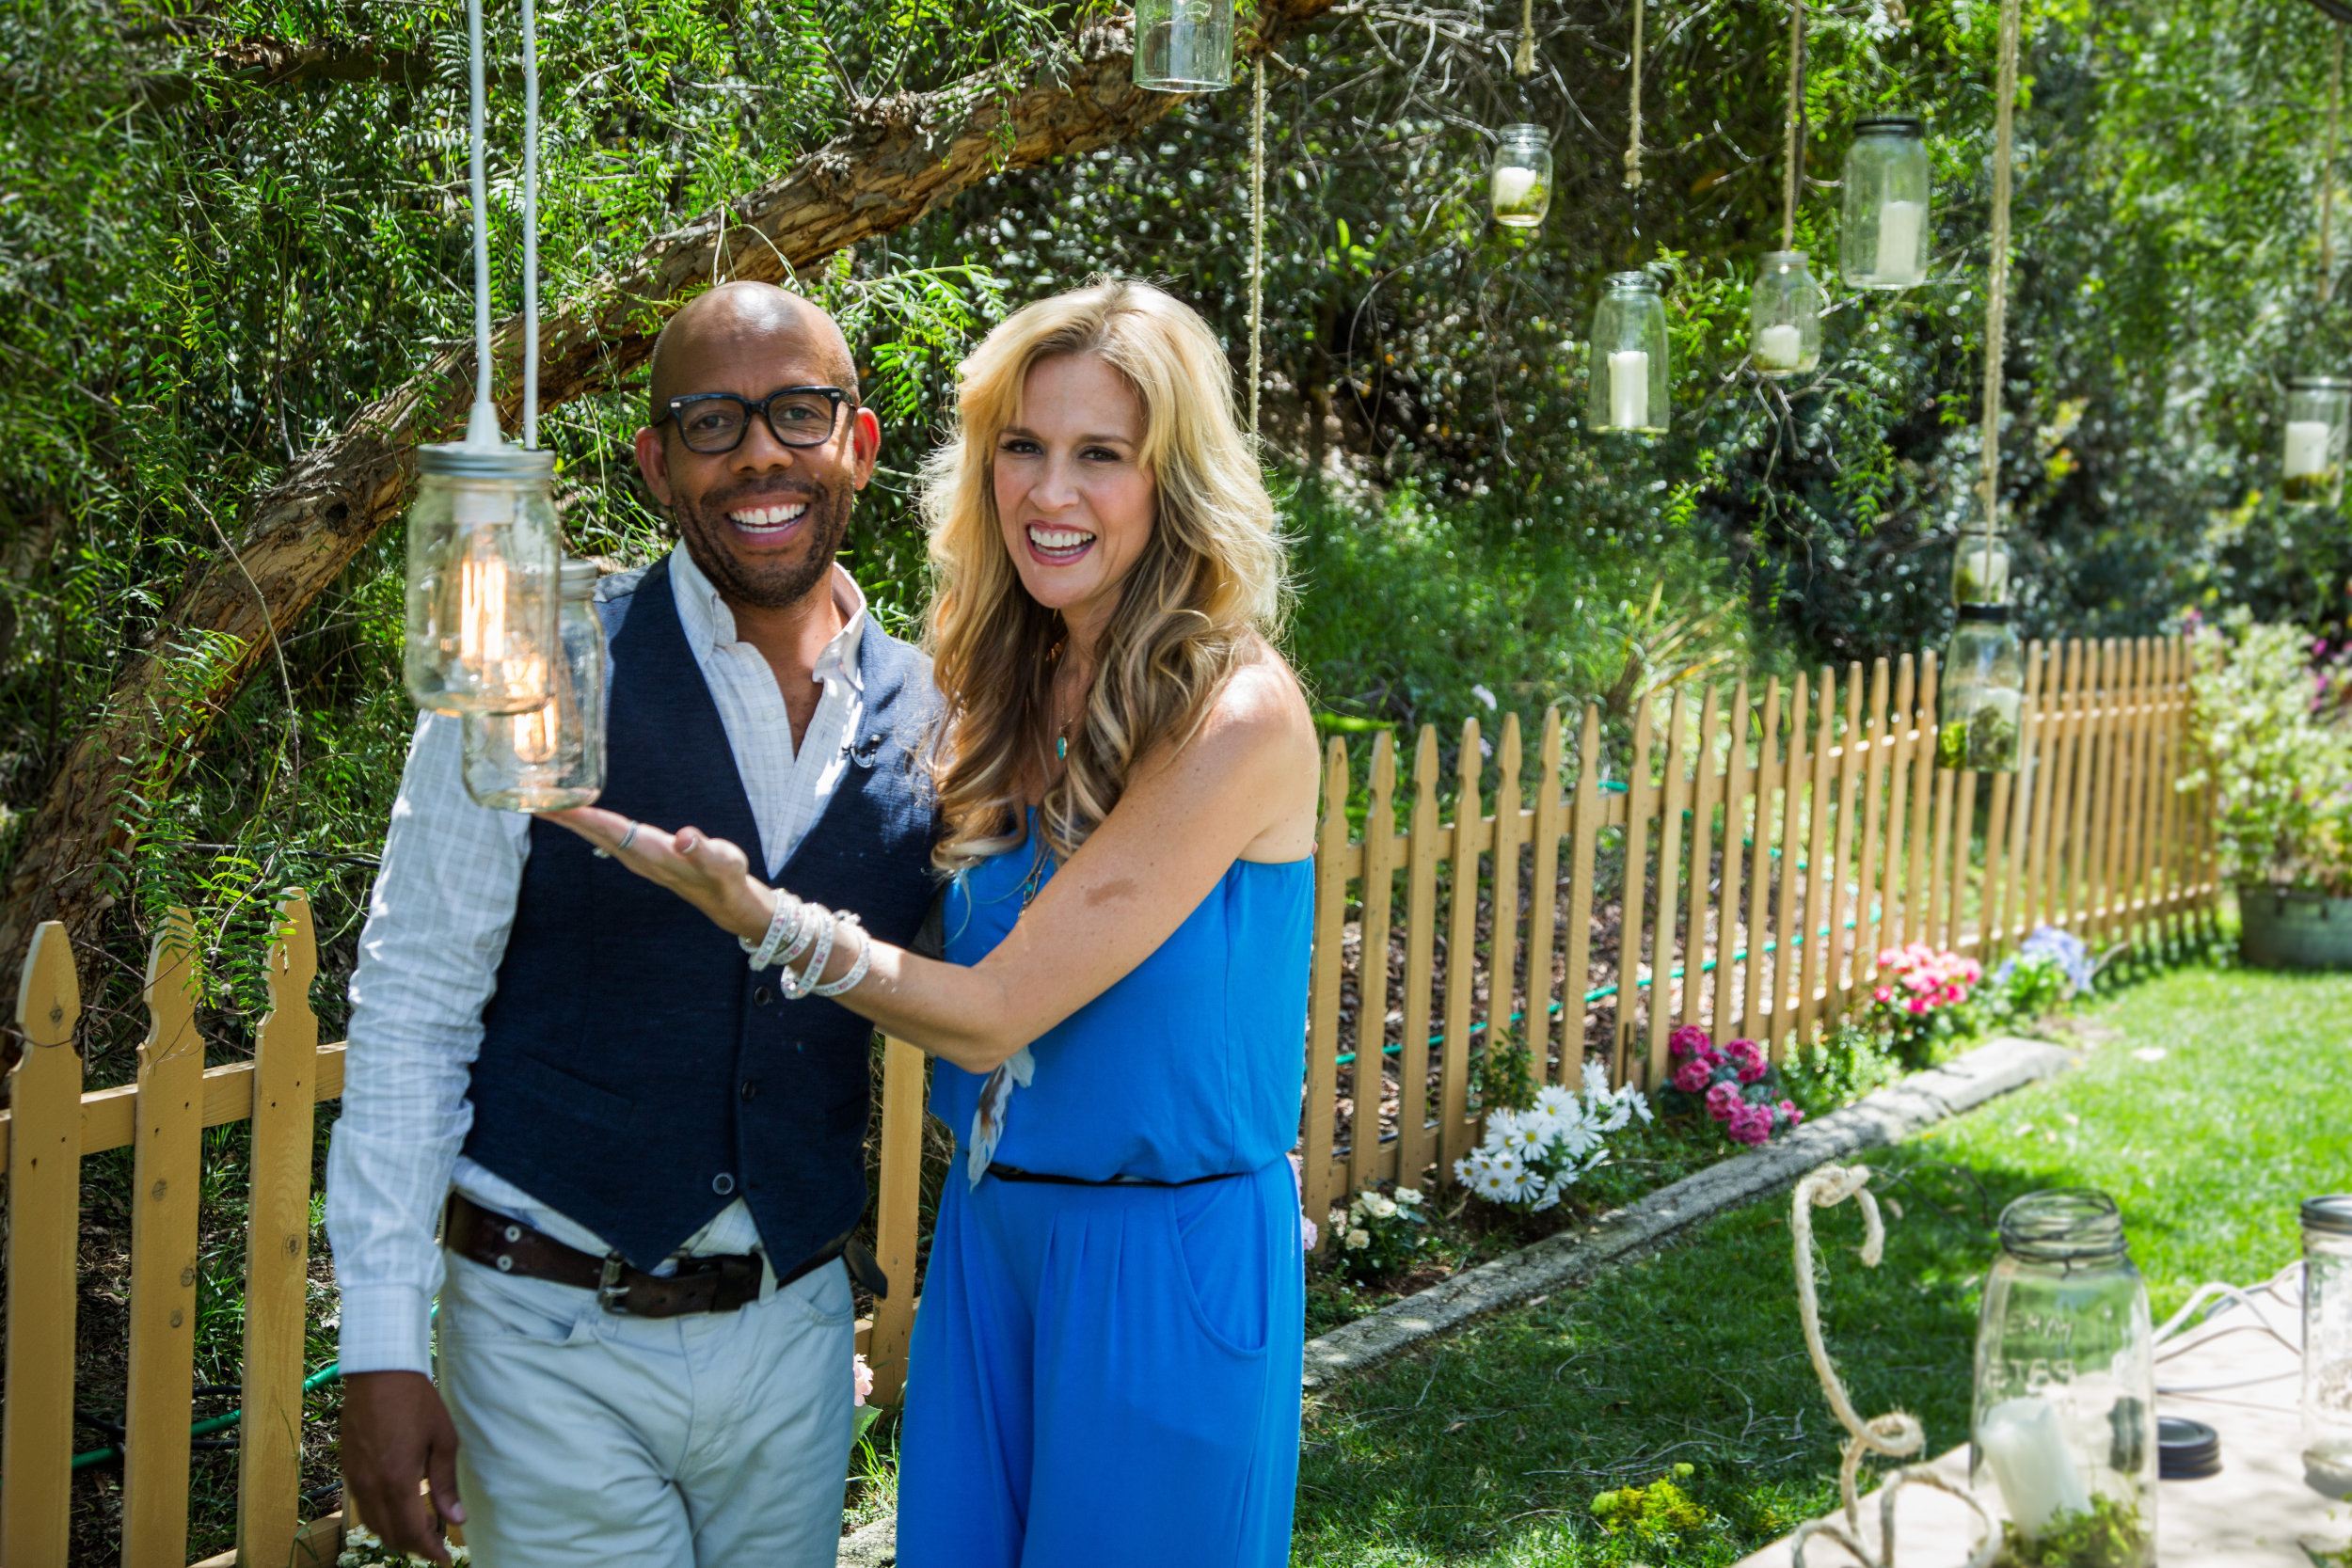 Hollywood steals home and family - Hollywood Steals Home And Family 42